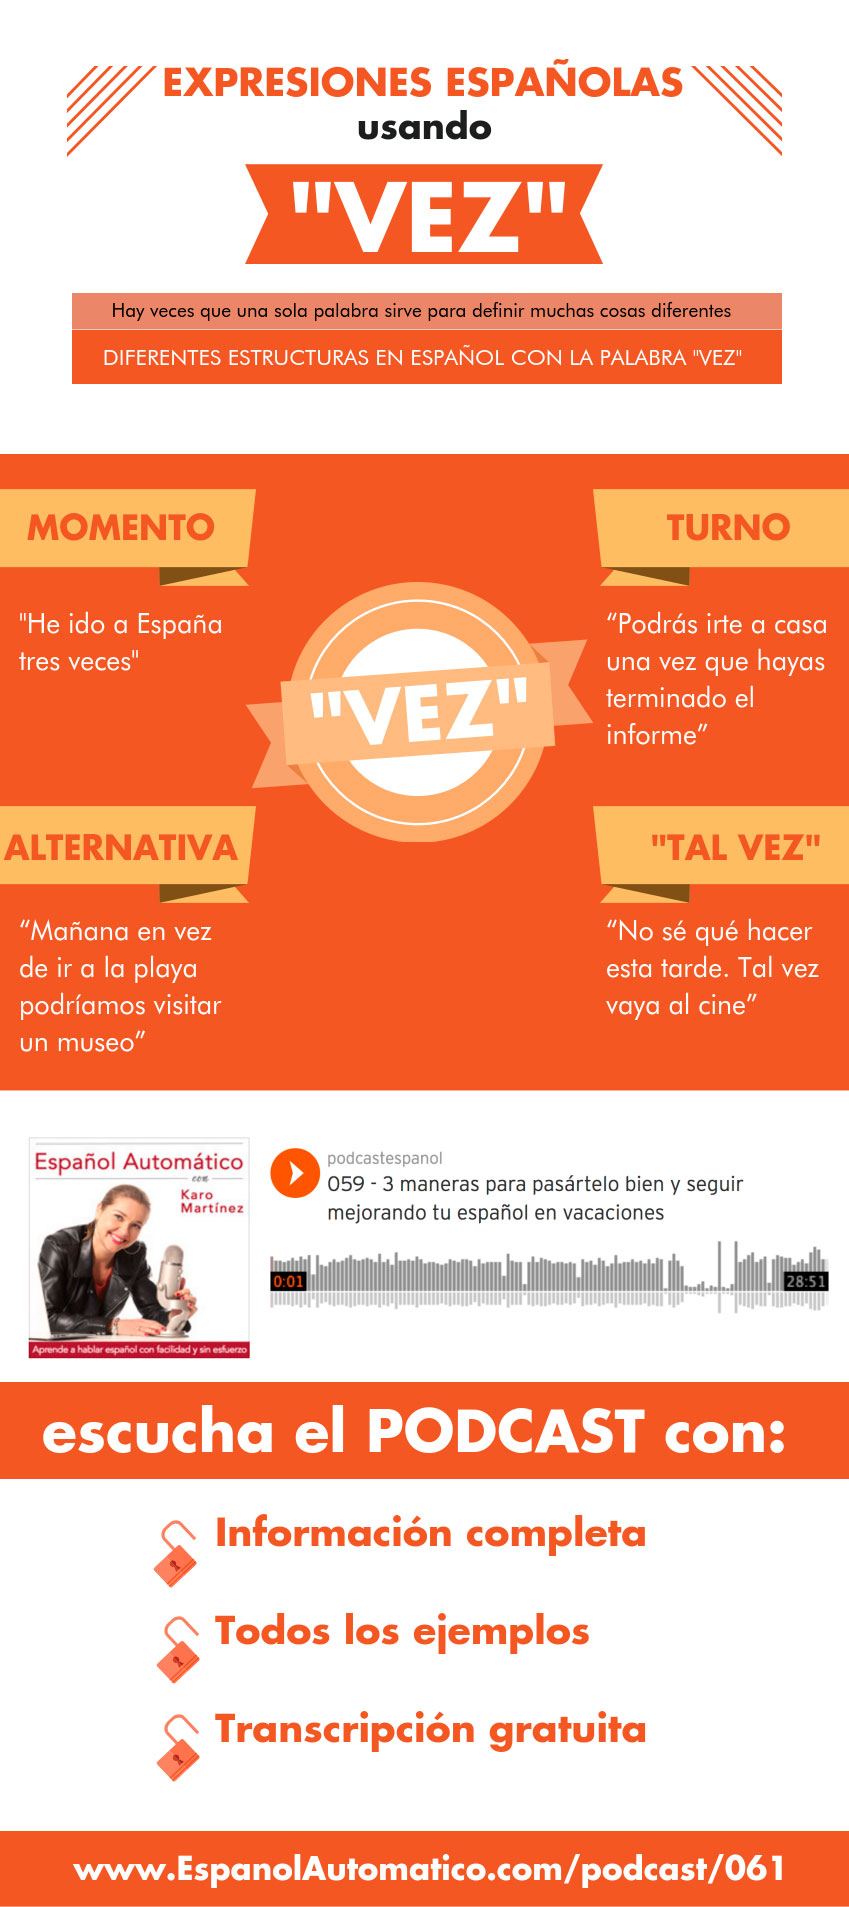 "Expresiones españolas usando ""vez""[Podcast 061] Learn Spanish in fun and easy way with our award-winning podcast: http://espanolautomatico.com/podcast/061REPIN for later"